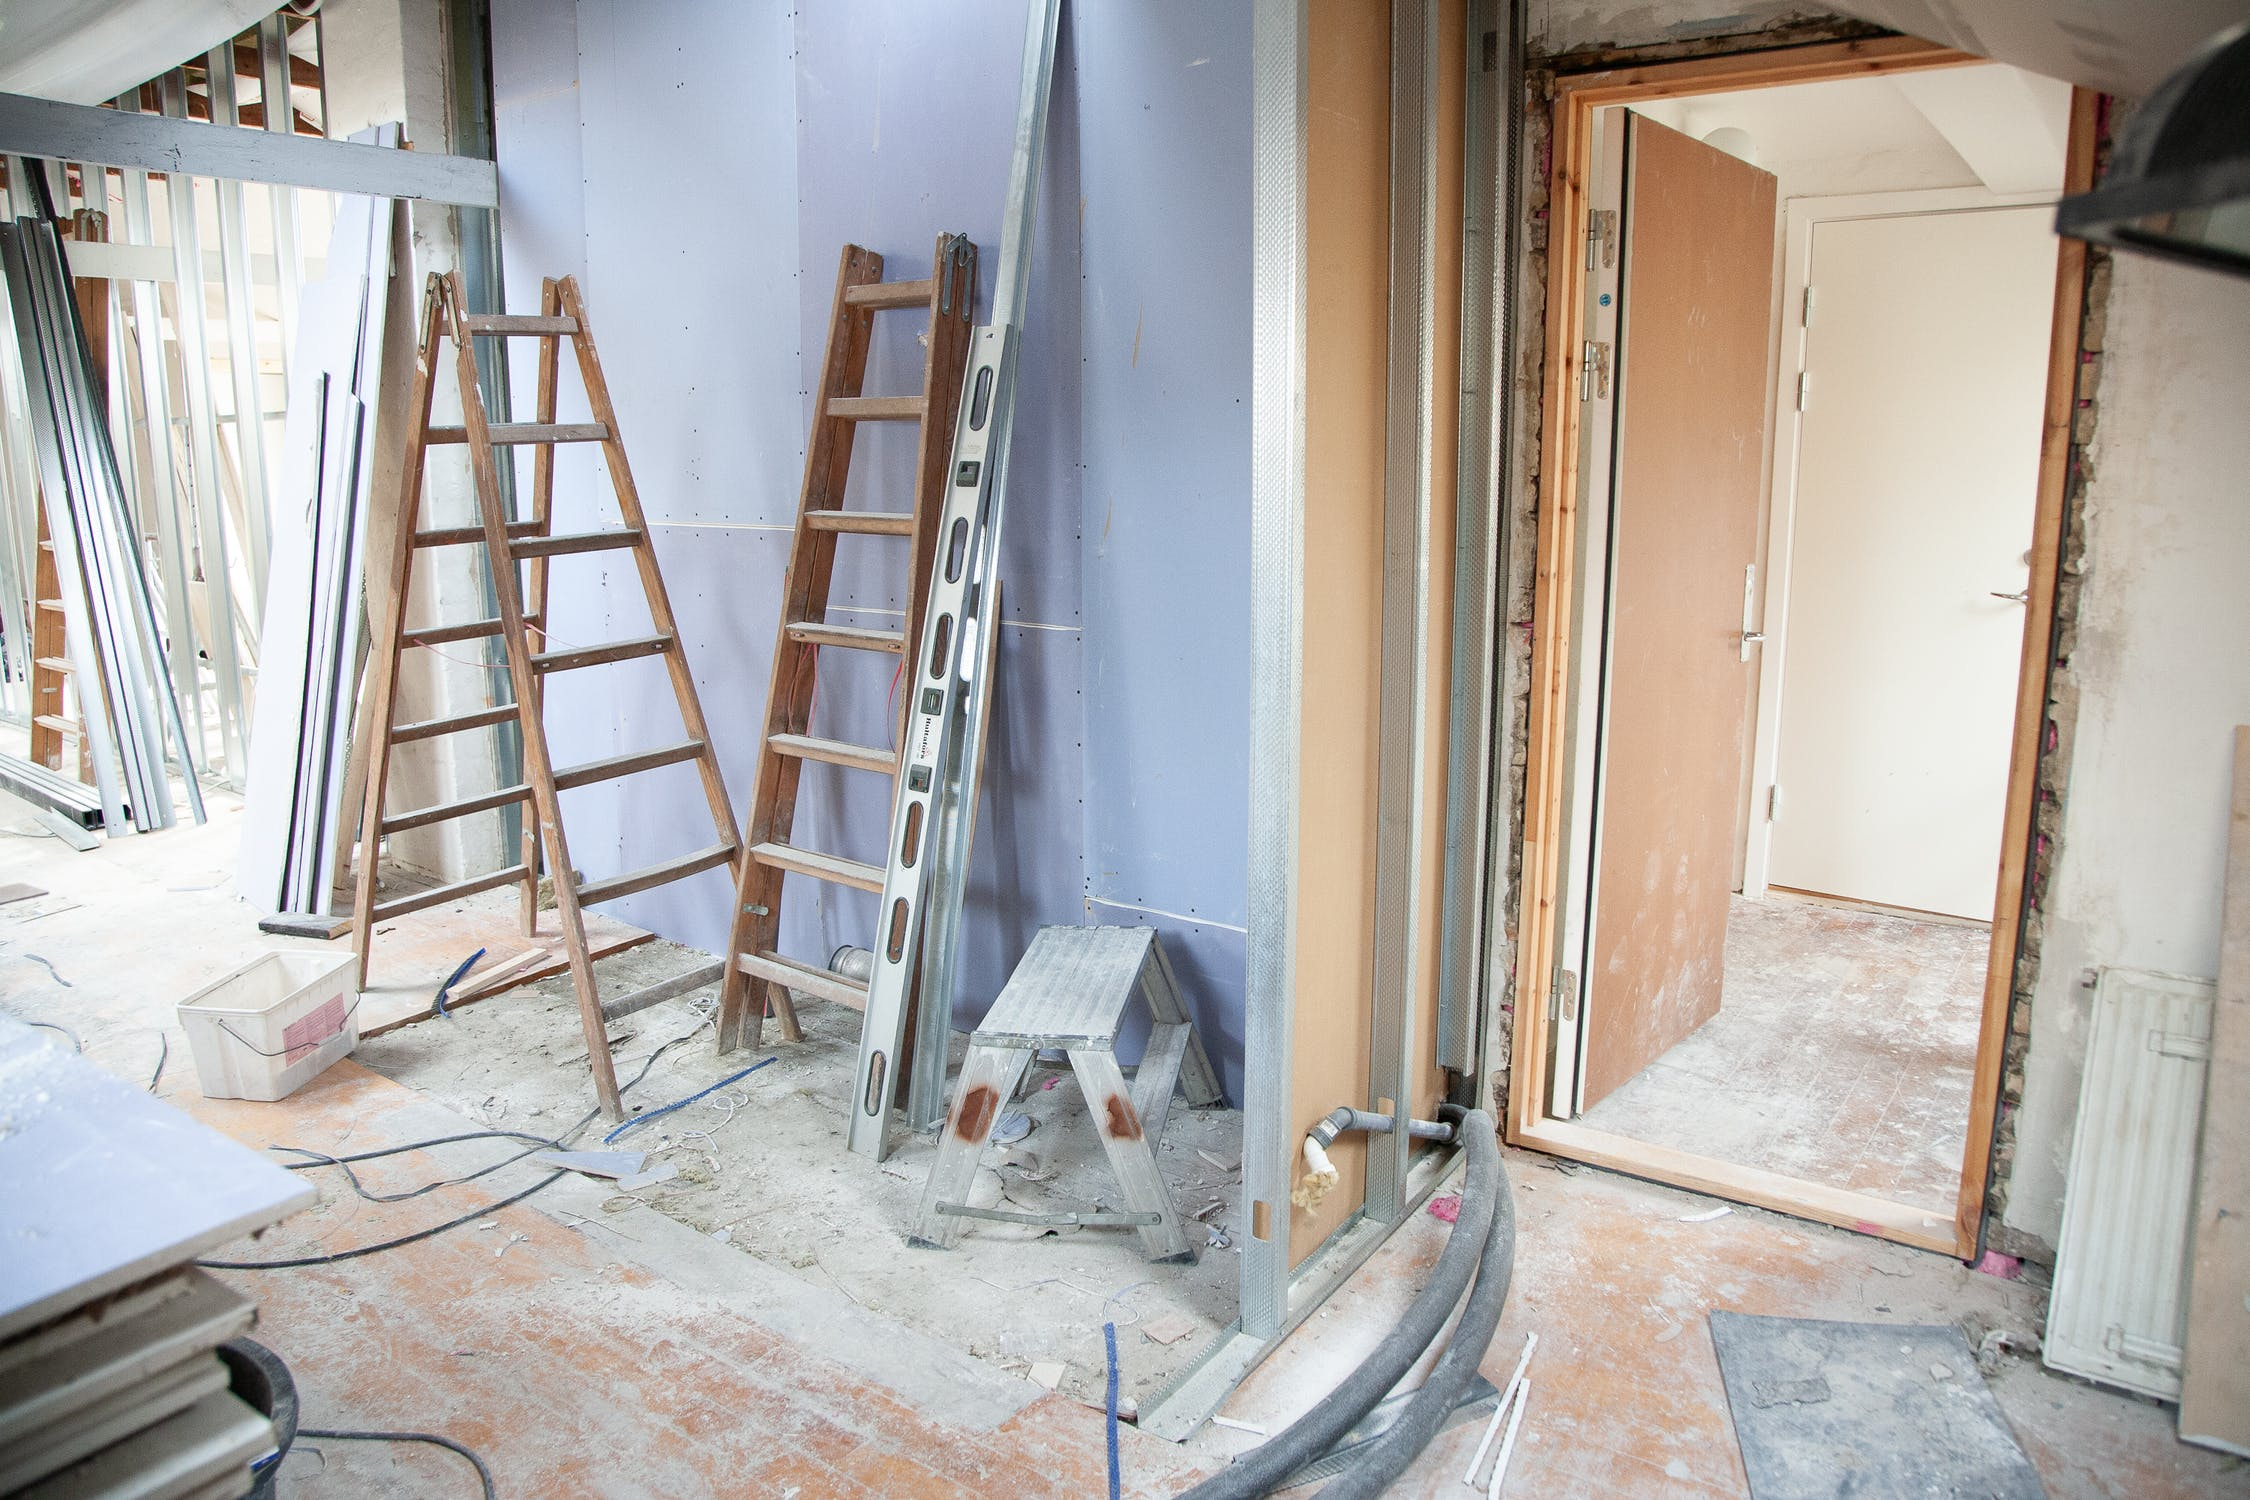 Clients need to trust real estate agents in the renovation process because agents can make important decisions for them.